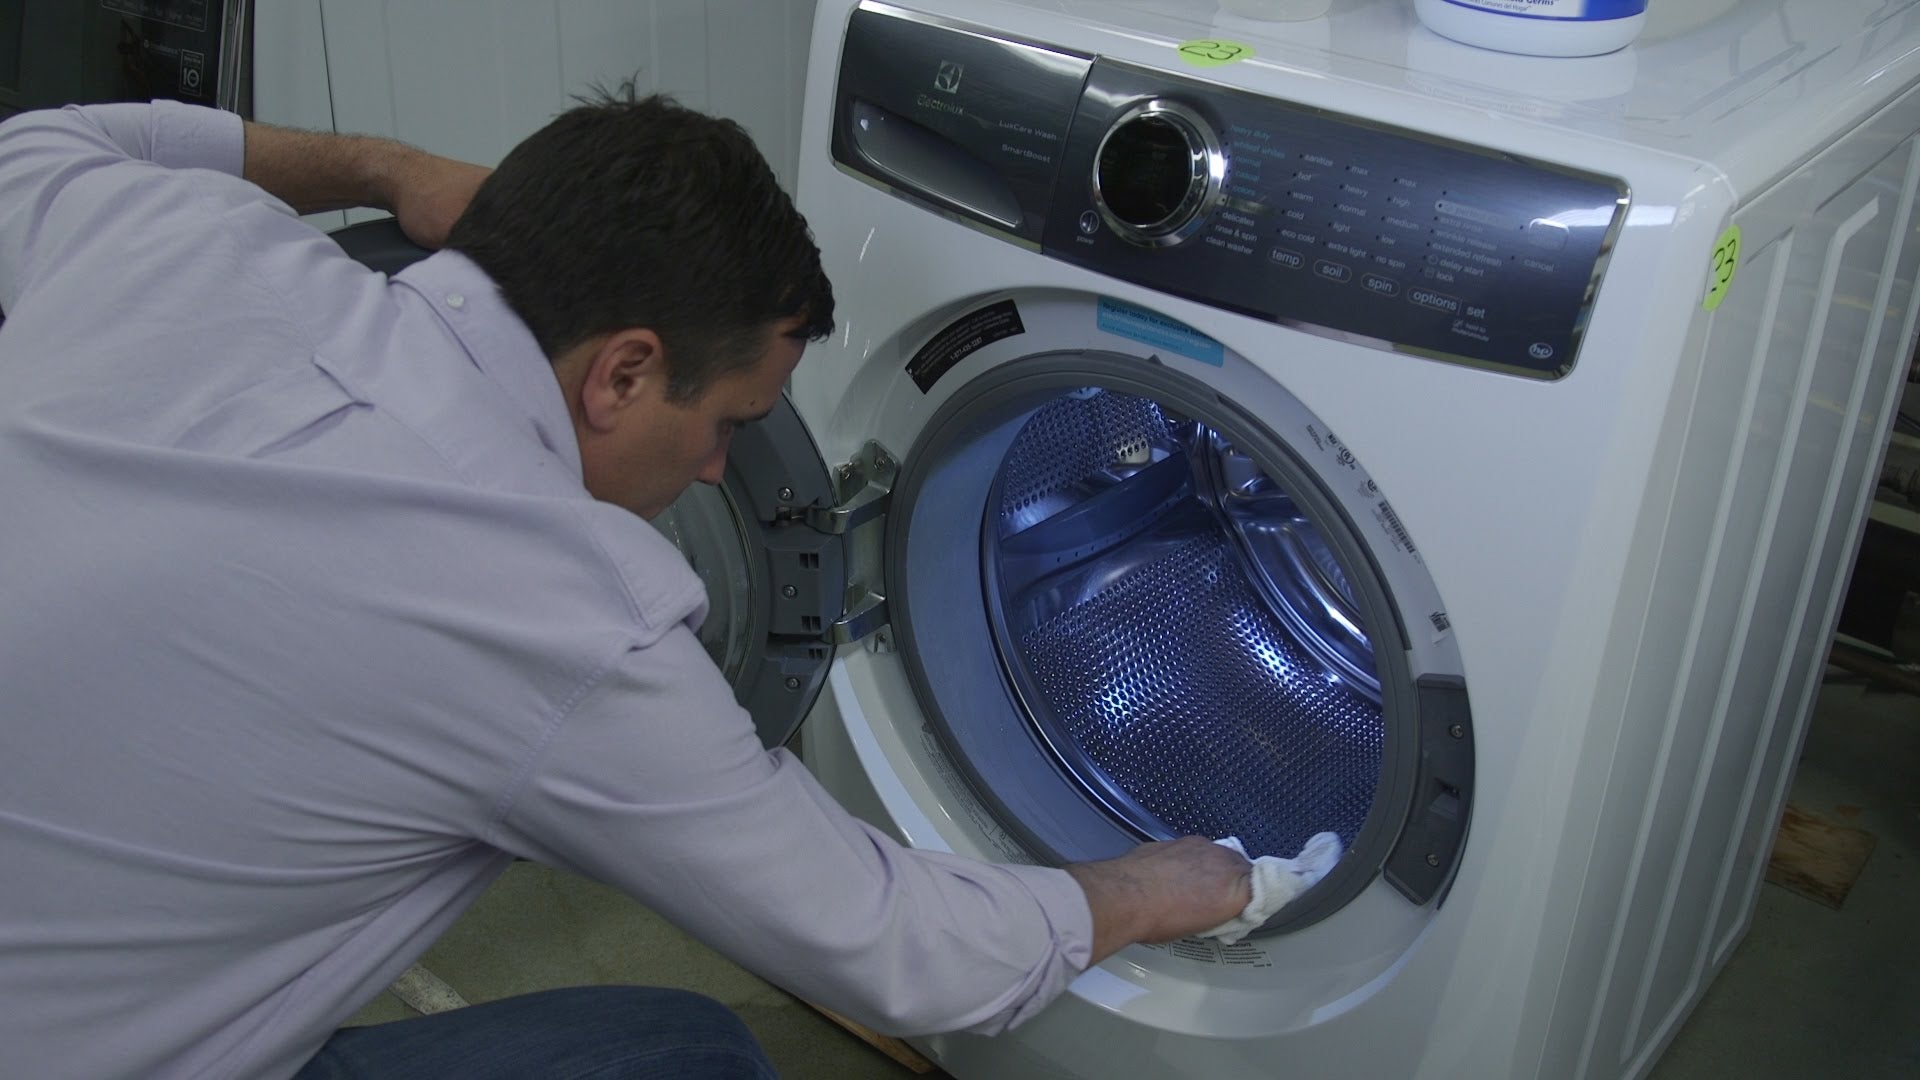 Keep Your Front Loading Washer Stink Free With These Four Tips